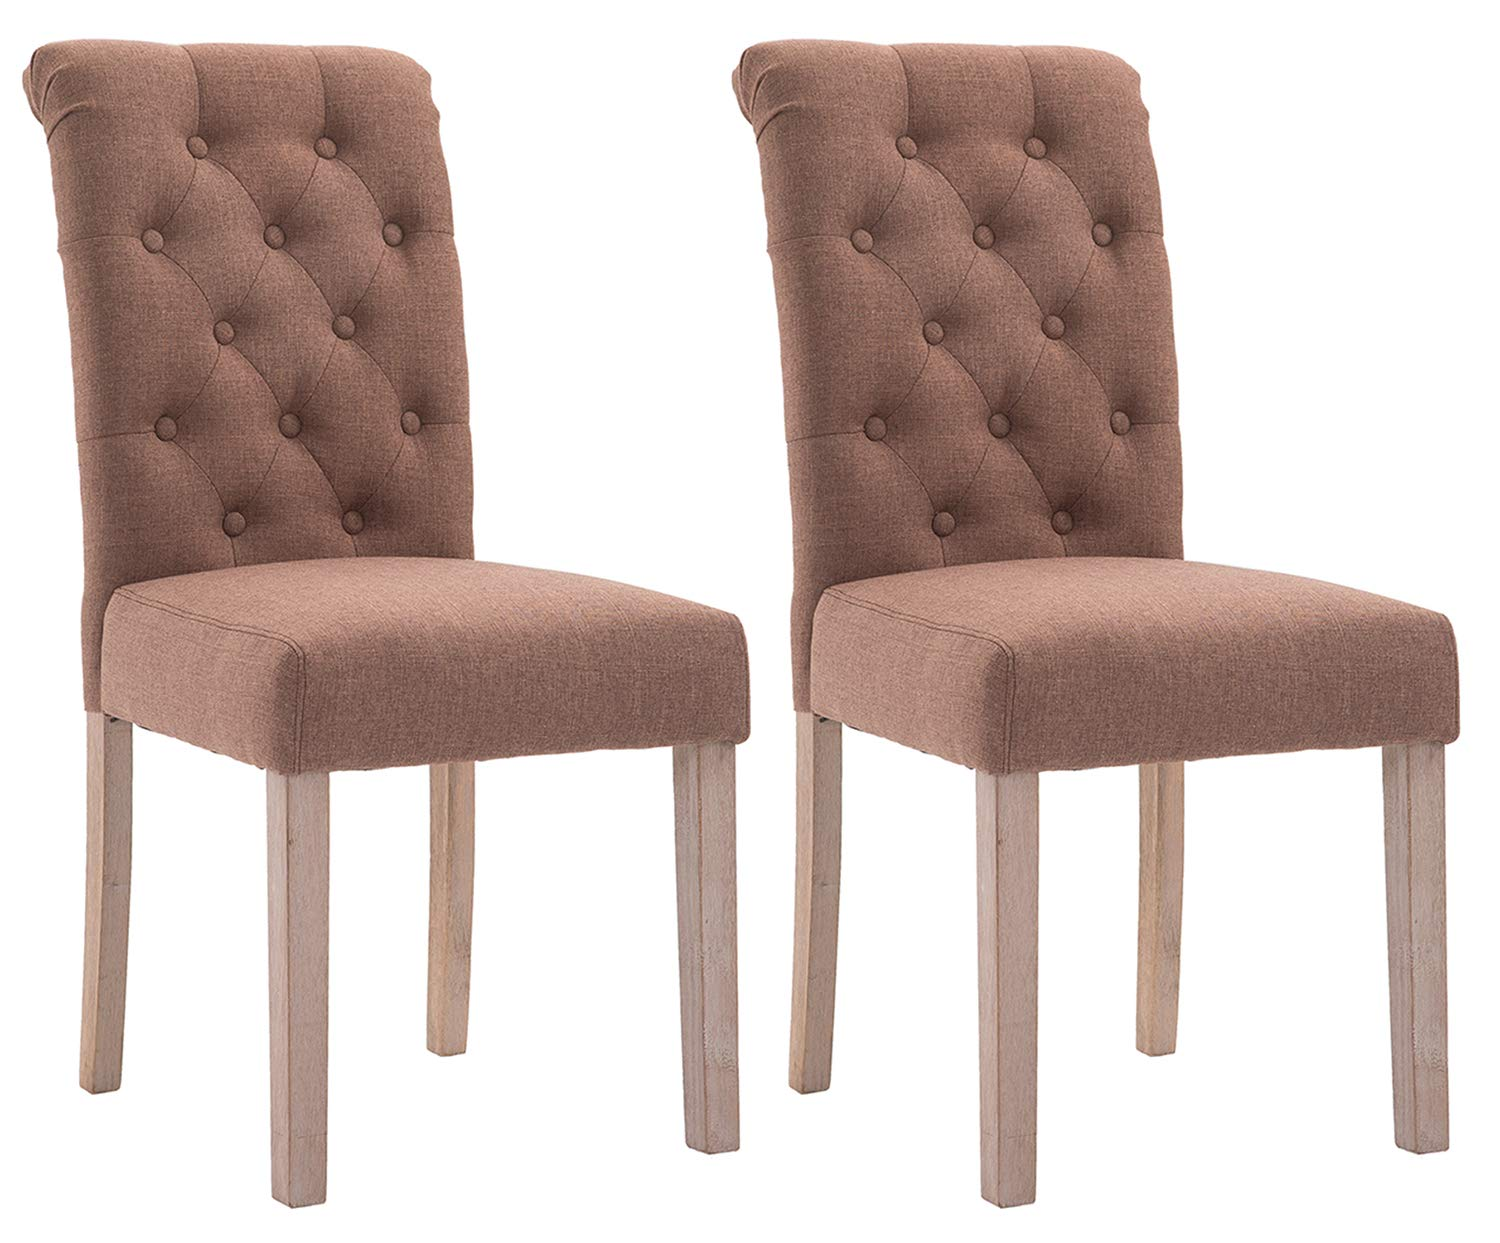 ZXBSWELE Set of 2 Button Tufted Dining Chair with Solid Wood Legs for Dining Room Living Room, Brown